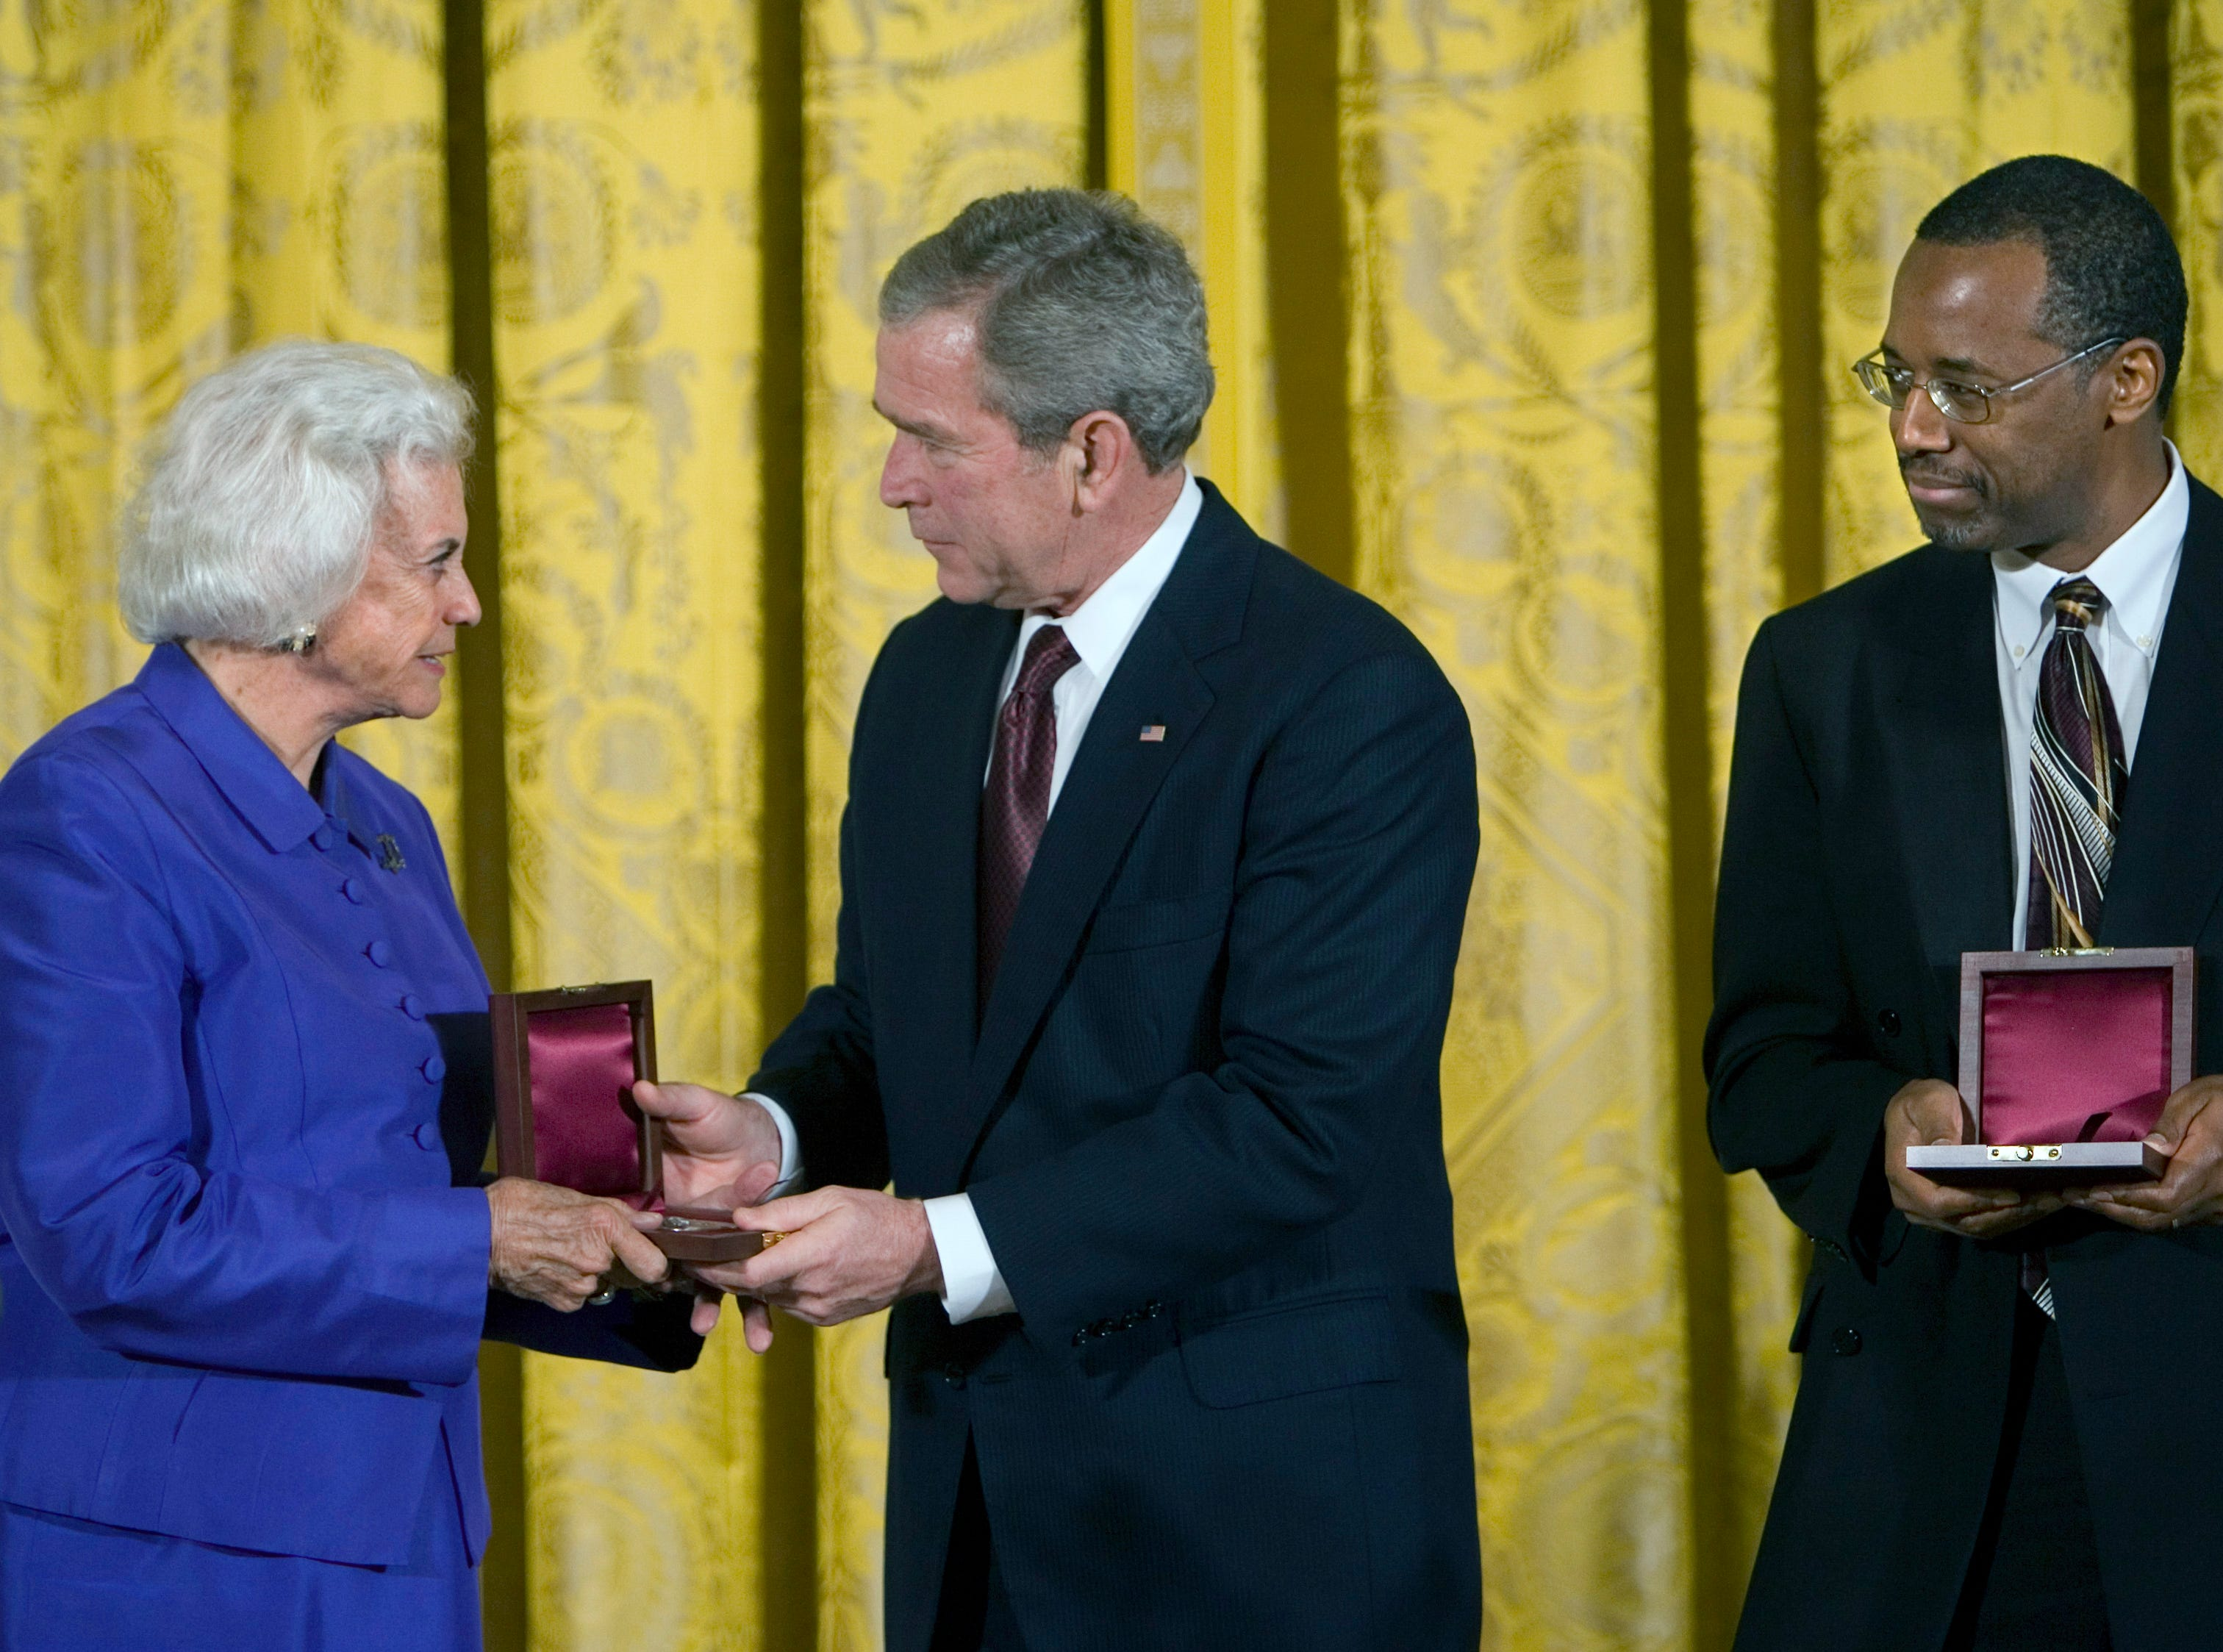 President Bush presents The Lincoln Medal to retired U.S. Supreme Court Justice Sandra Day O'Connor, left, and Dr. Benjamin Carson, right, a renowned pediatric neurosurgeon at Johns Hopkins Children's Center in Baltimore, during  a ceremony in honor of Abraham Lincoln's 199th birthday, in the East Room of the White House in Washington, Sunday, Feb. 10, 2008.